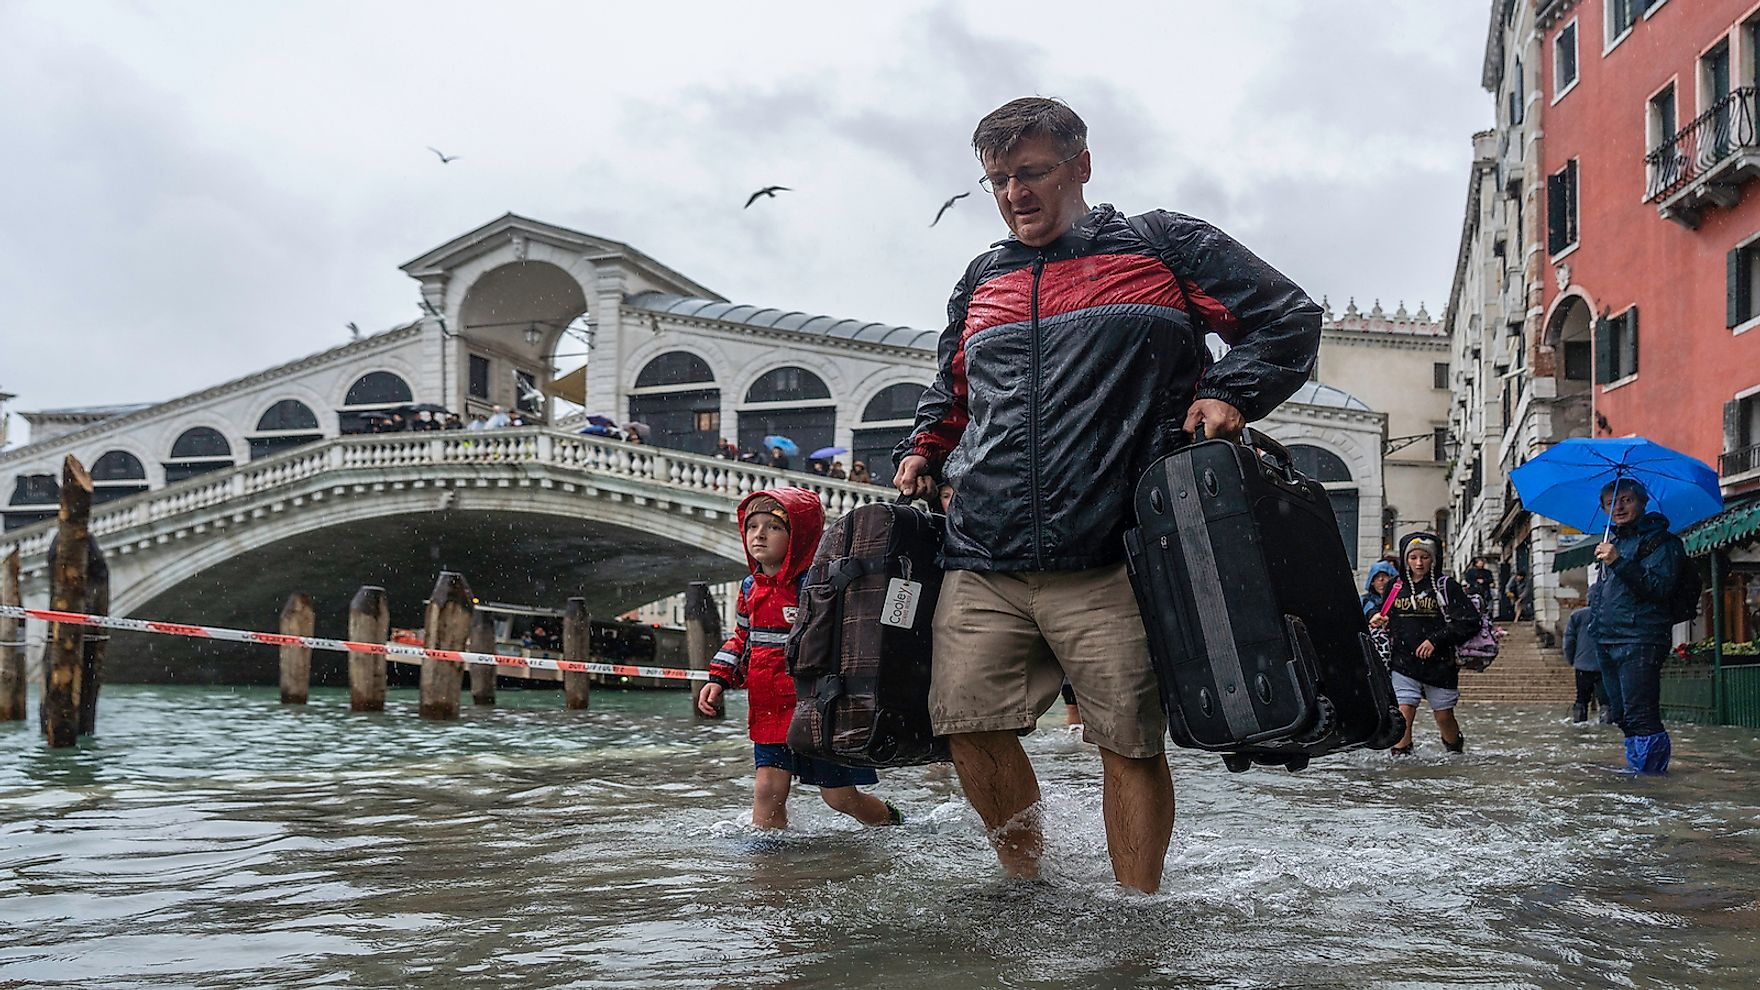 Tourists in Venice during a flood. Editorial credit: Ihor Serdyukov / Shutterstock.com.